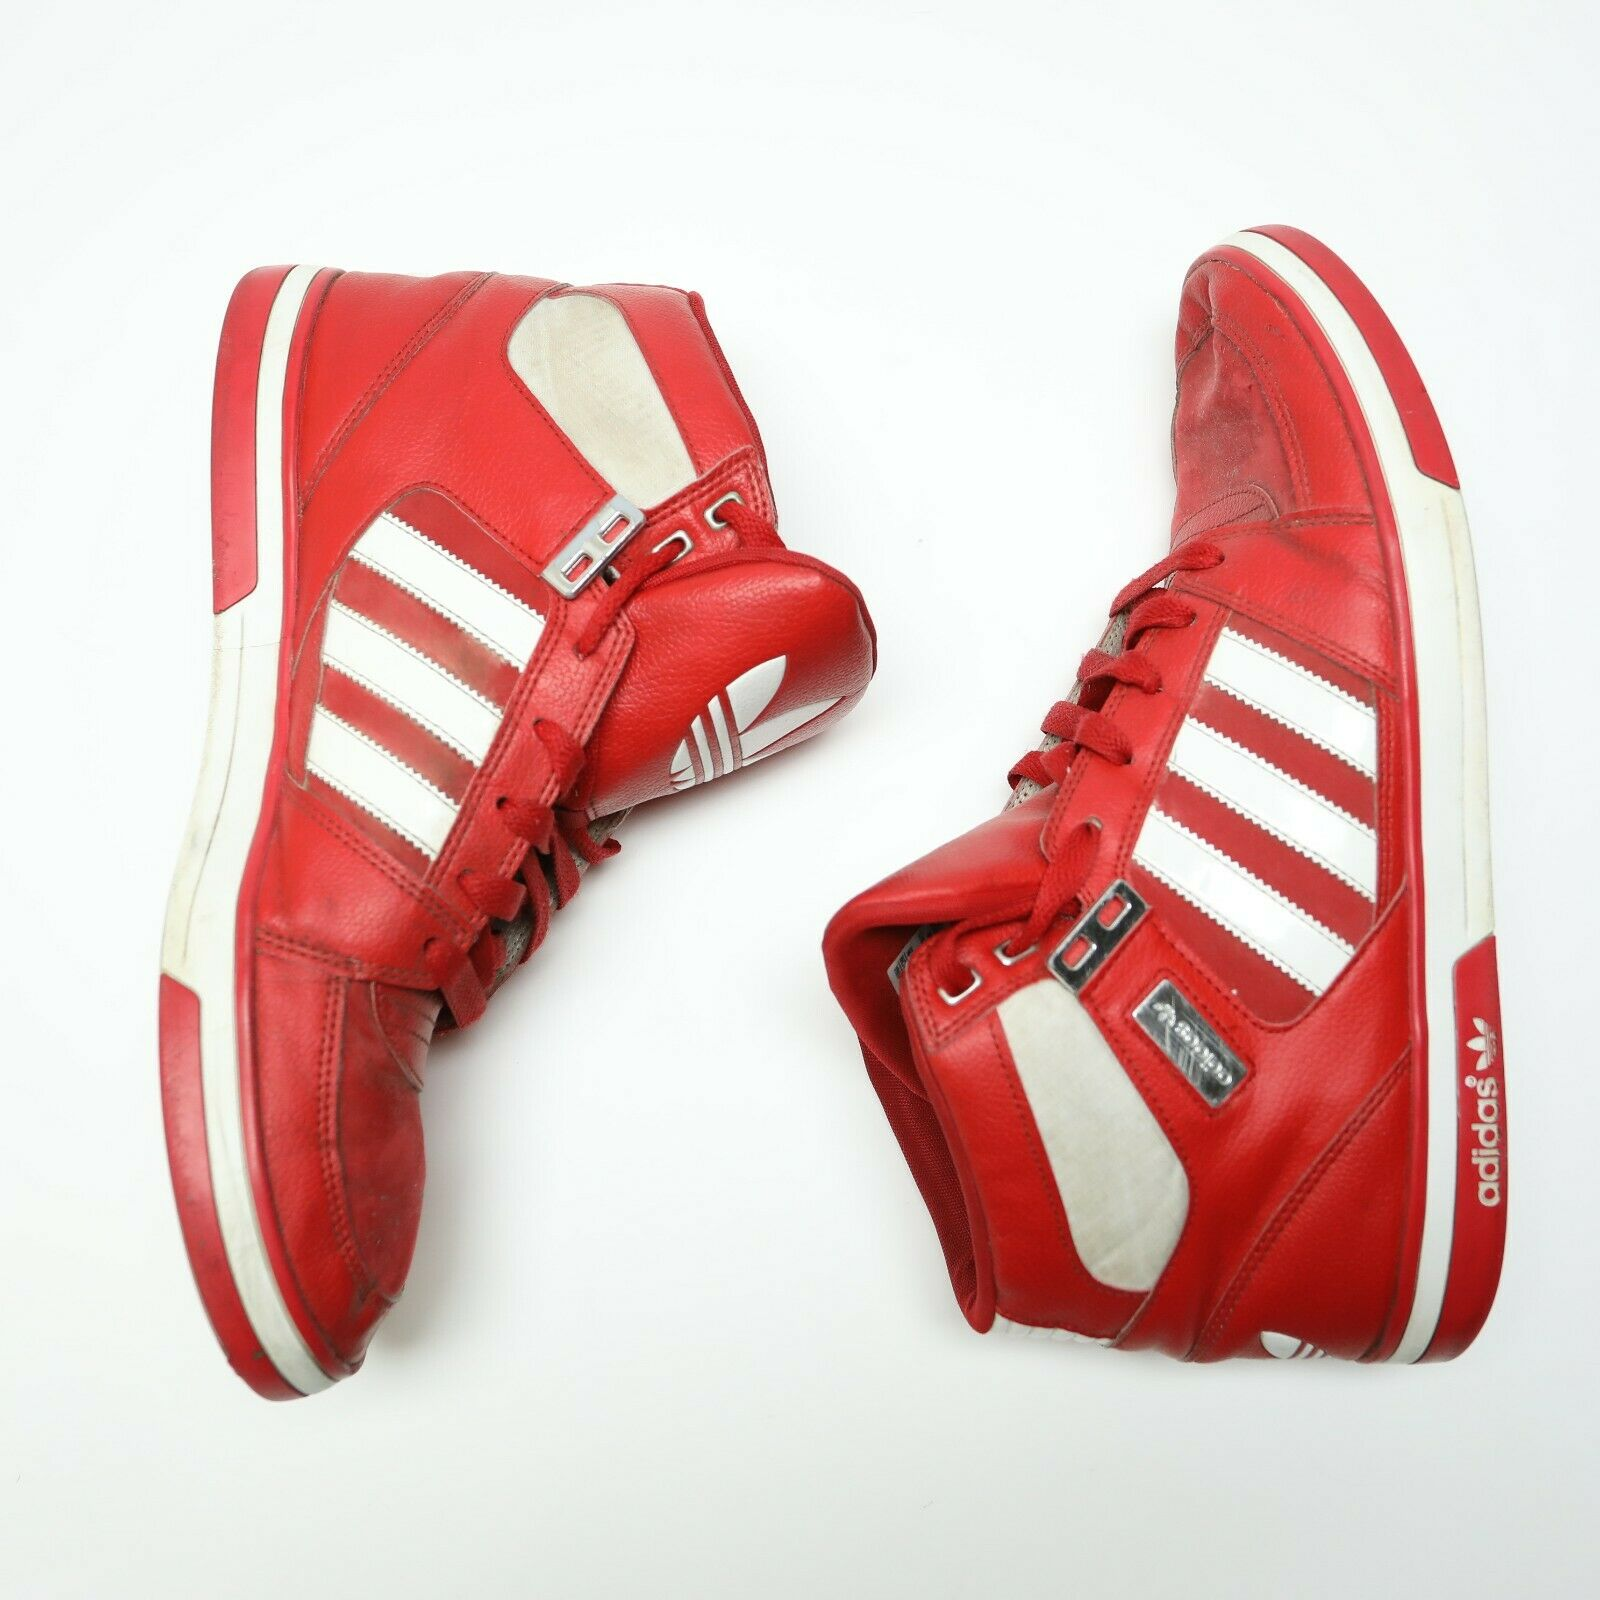 VTG Adidas Men's Size 13 Red White Leather High Top Sneakers shoes Preowned